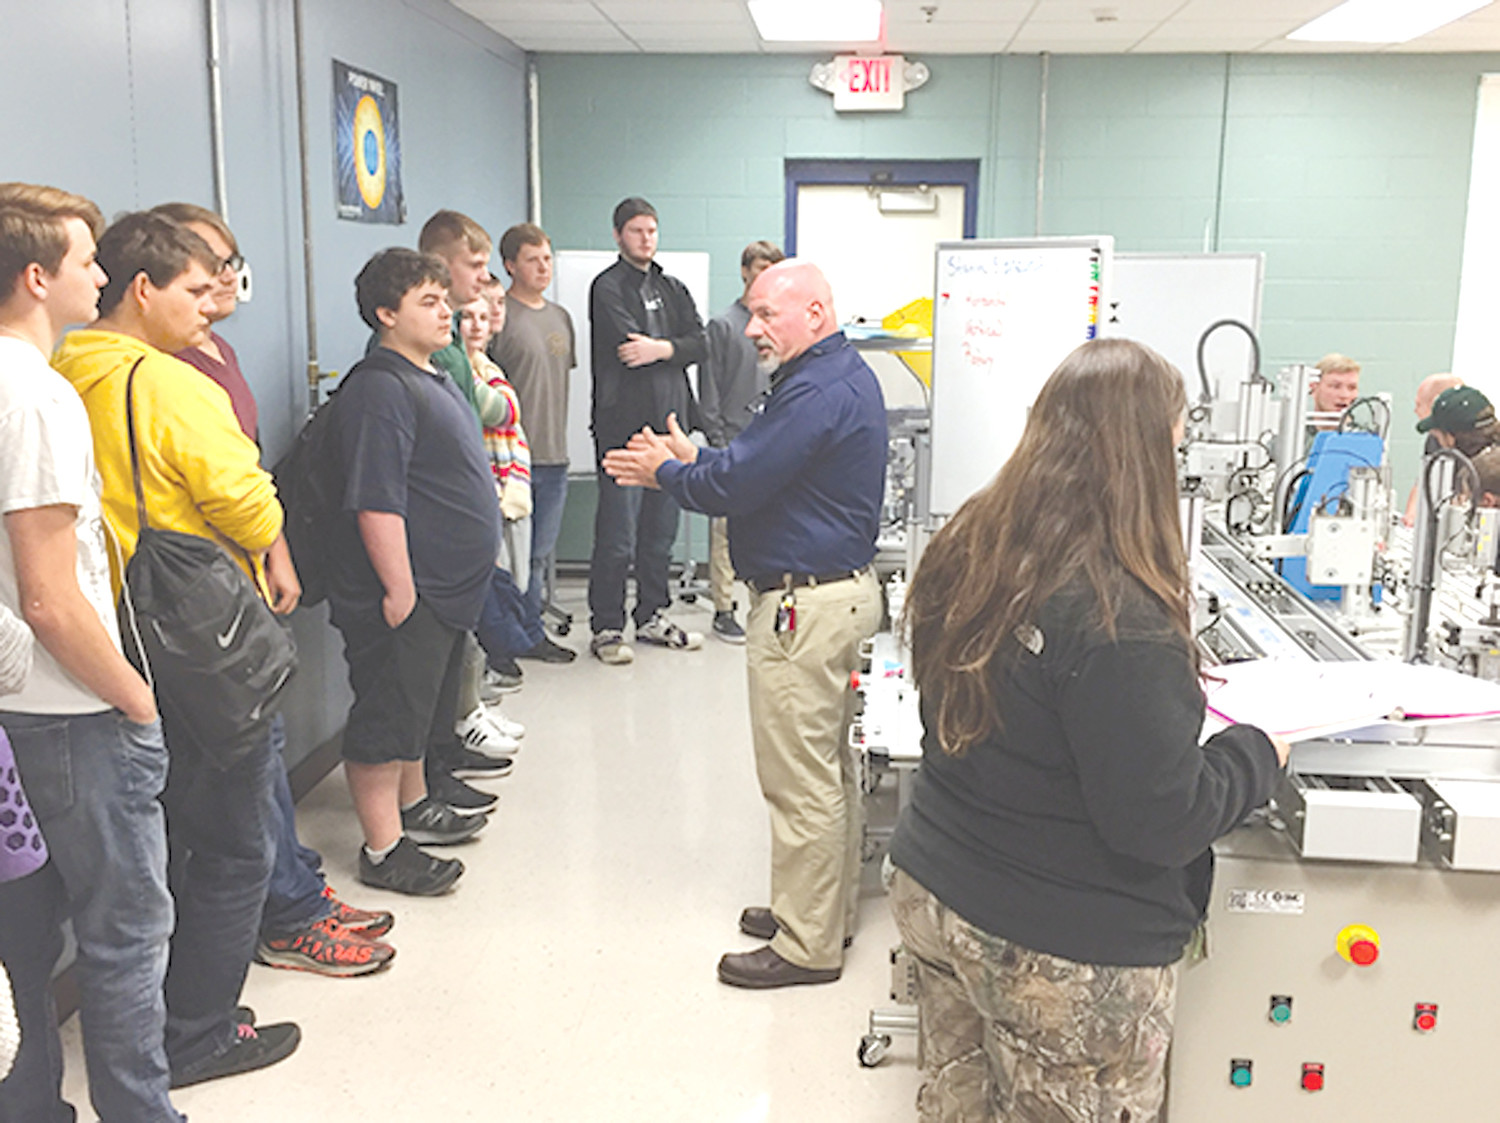 DR. TIM WILSON, CSCC Advanced Technologies Department chair, discusses the Mechatronics program at Cleveland State Community College, as well as CSCC's upcoming Mechatronics Institute, with students from Bradley Central and Walker Valley High Schools.